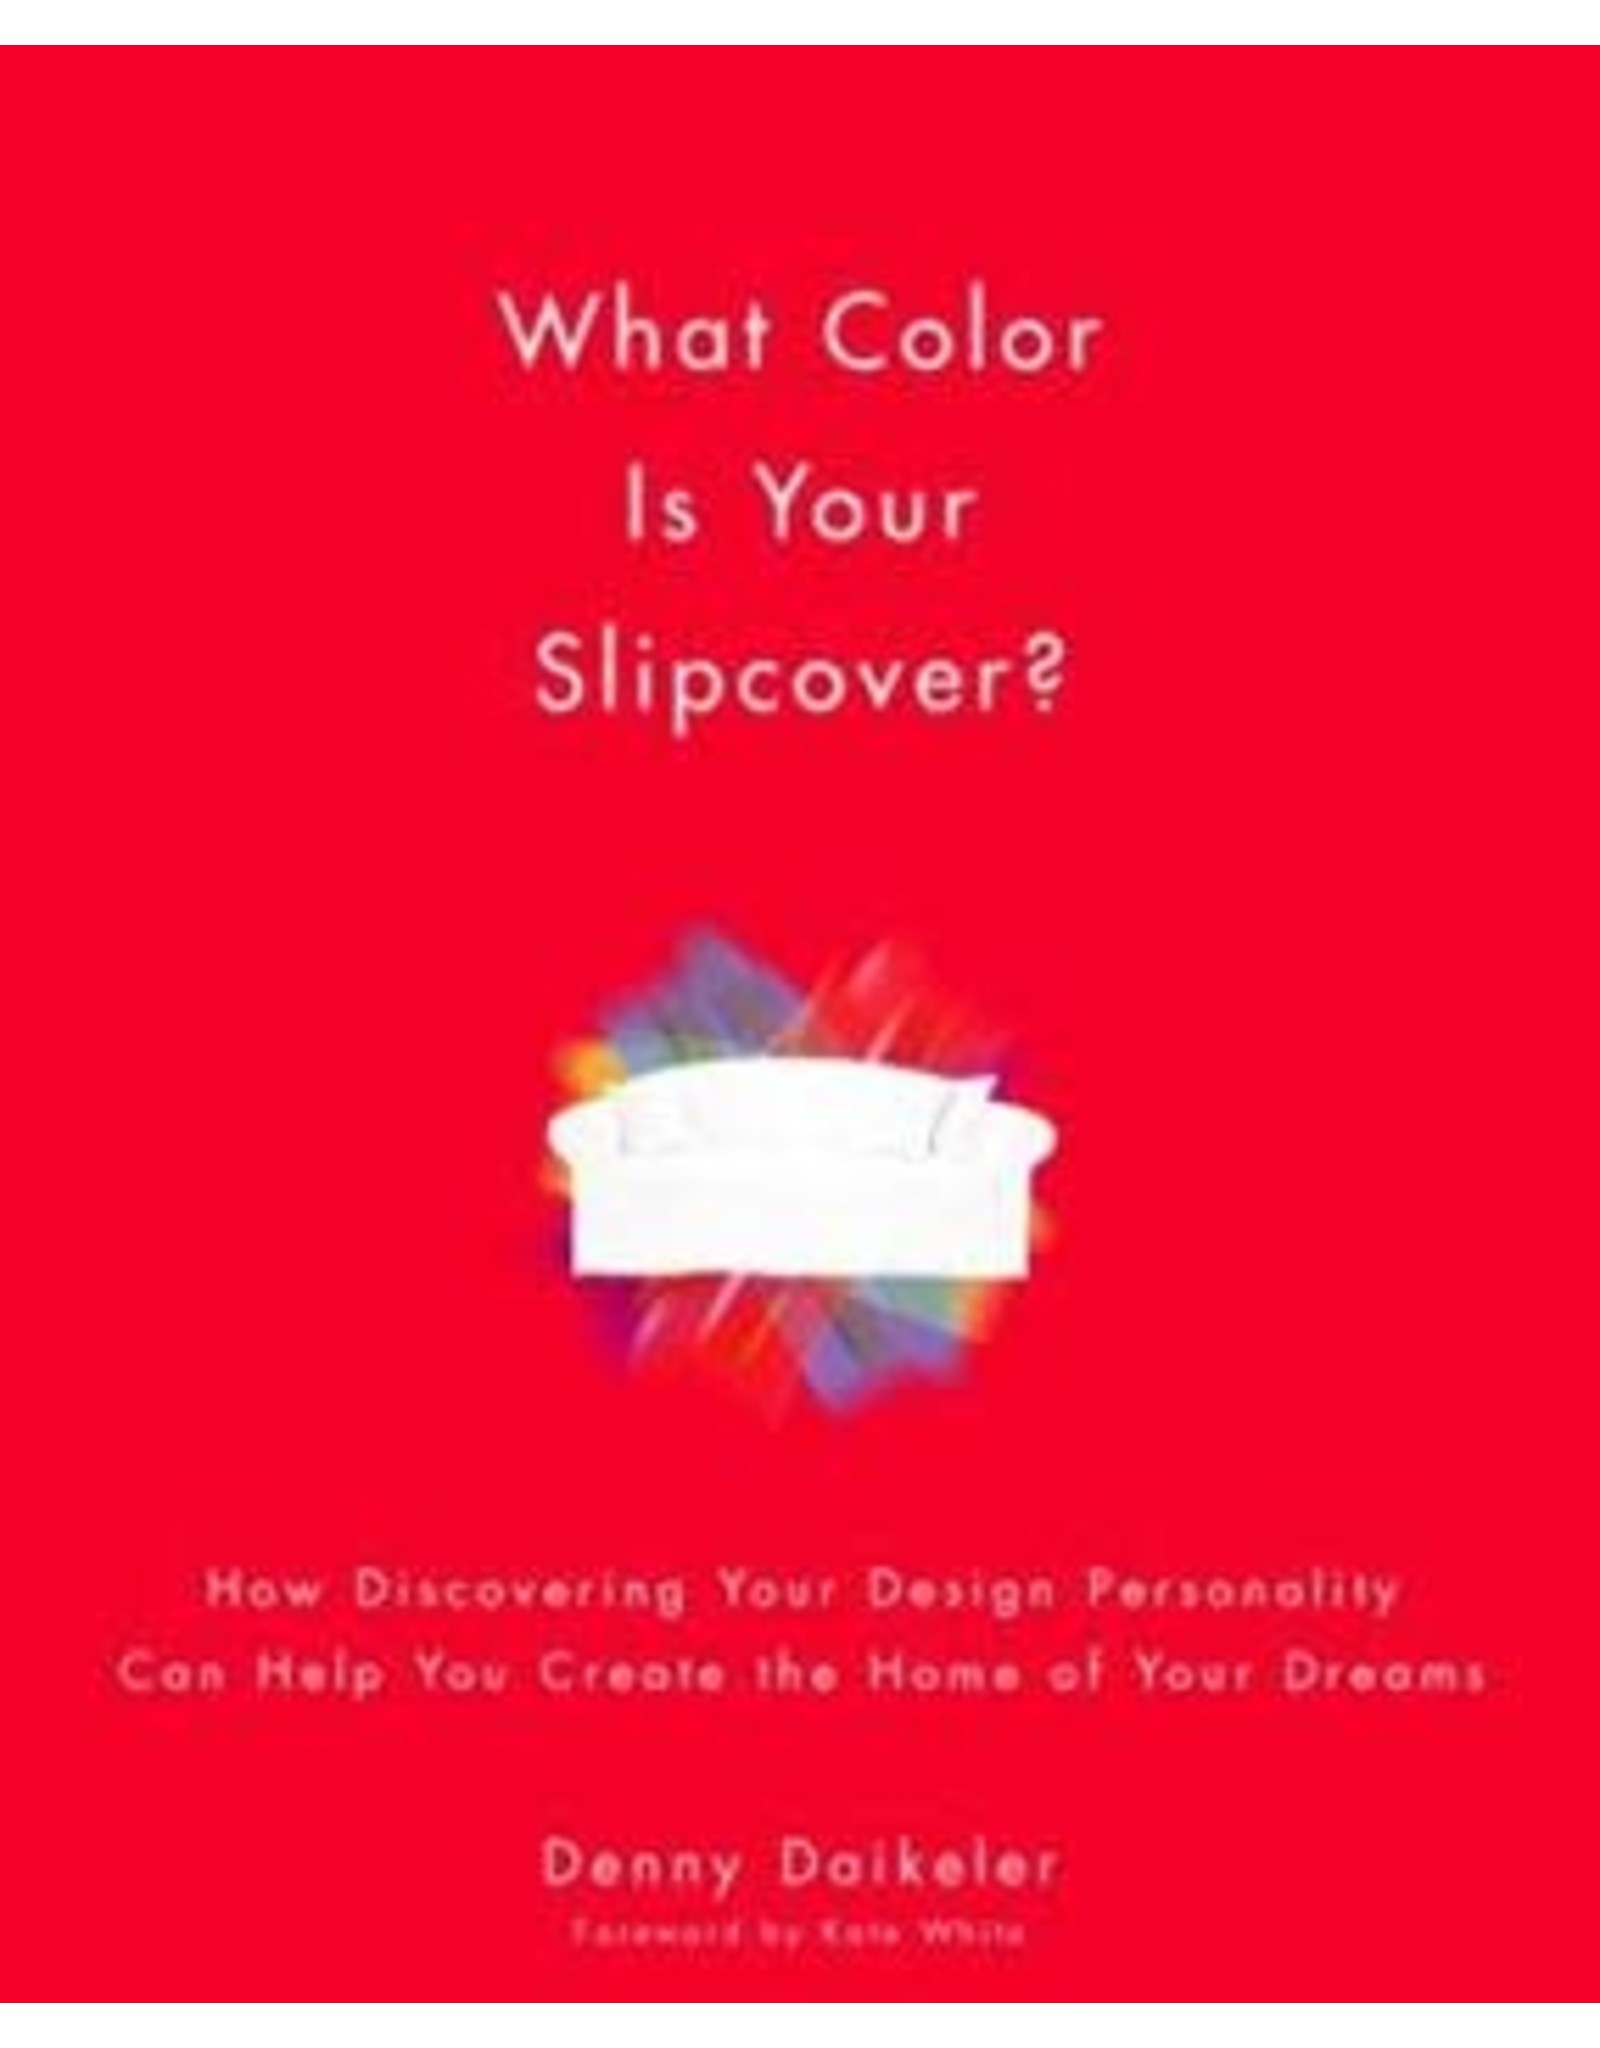 What Color is Your Slipcover?